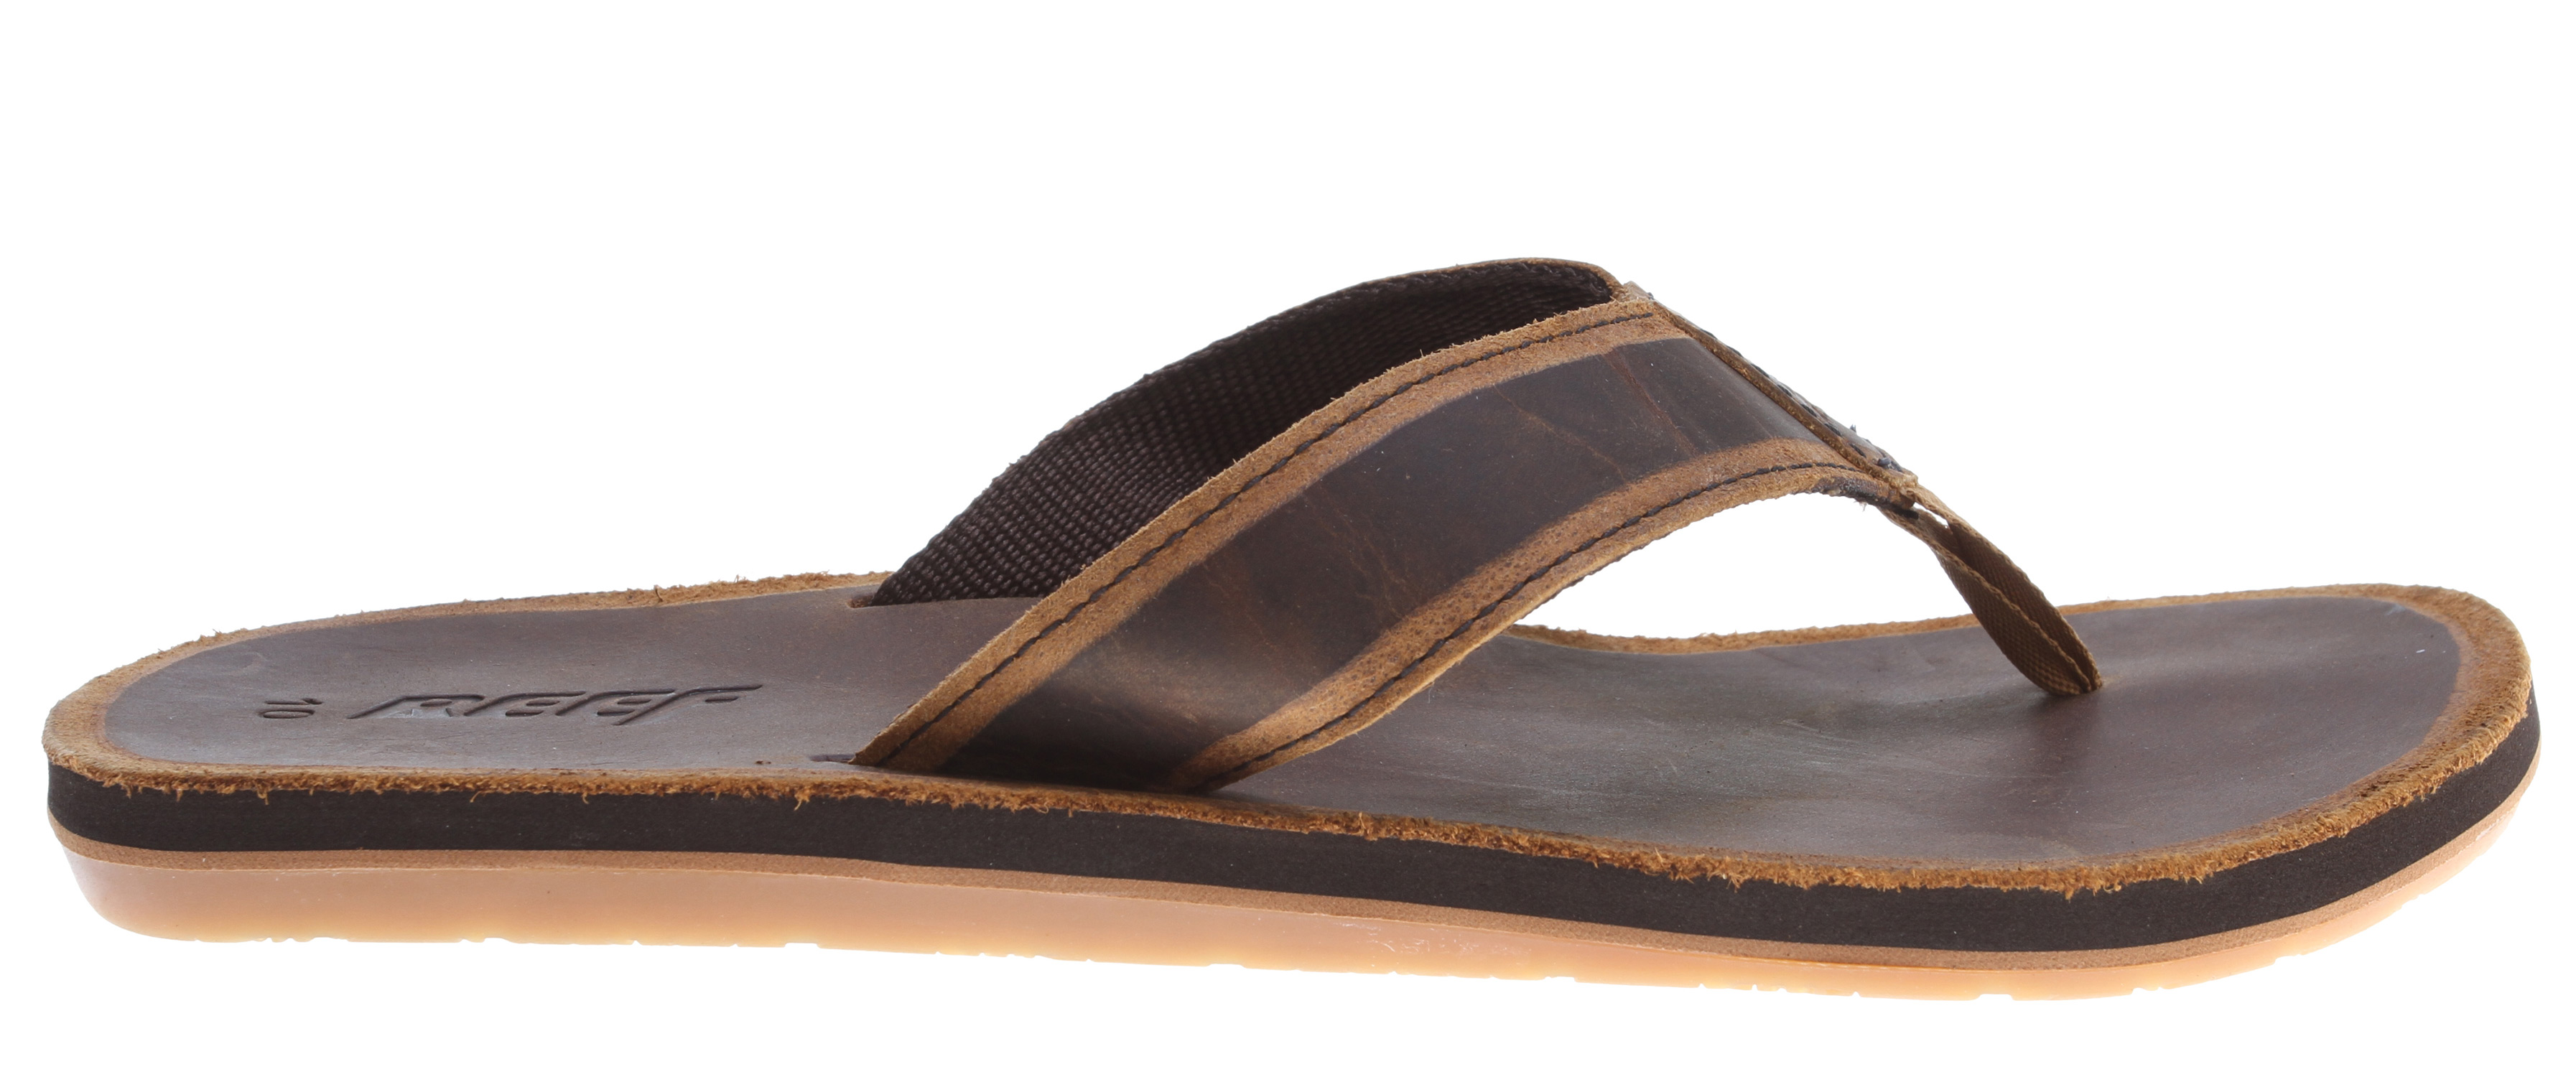 Surf Key Features of the Reef Skyver Sandals: rich full grain leather strap with contrast edge skyving design detail Rich full grain leather footbed reef-flex triple density eva construction with anatomical arch support highly abrasion resistant, molded reef rubber non-marking outsole - $31.95